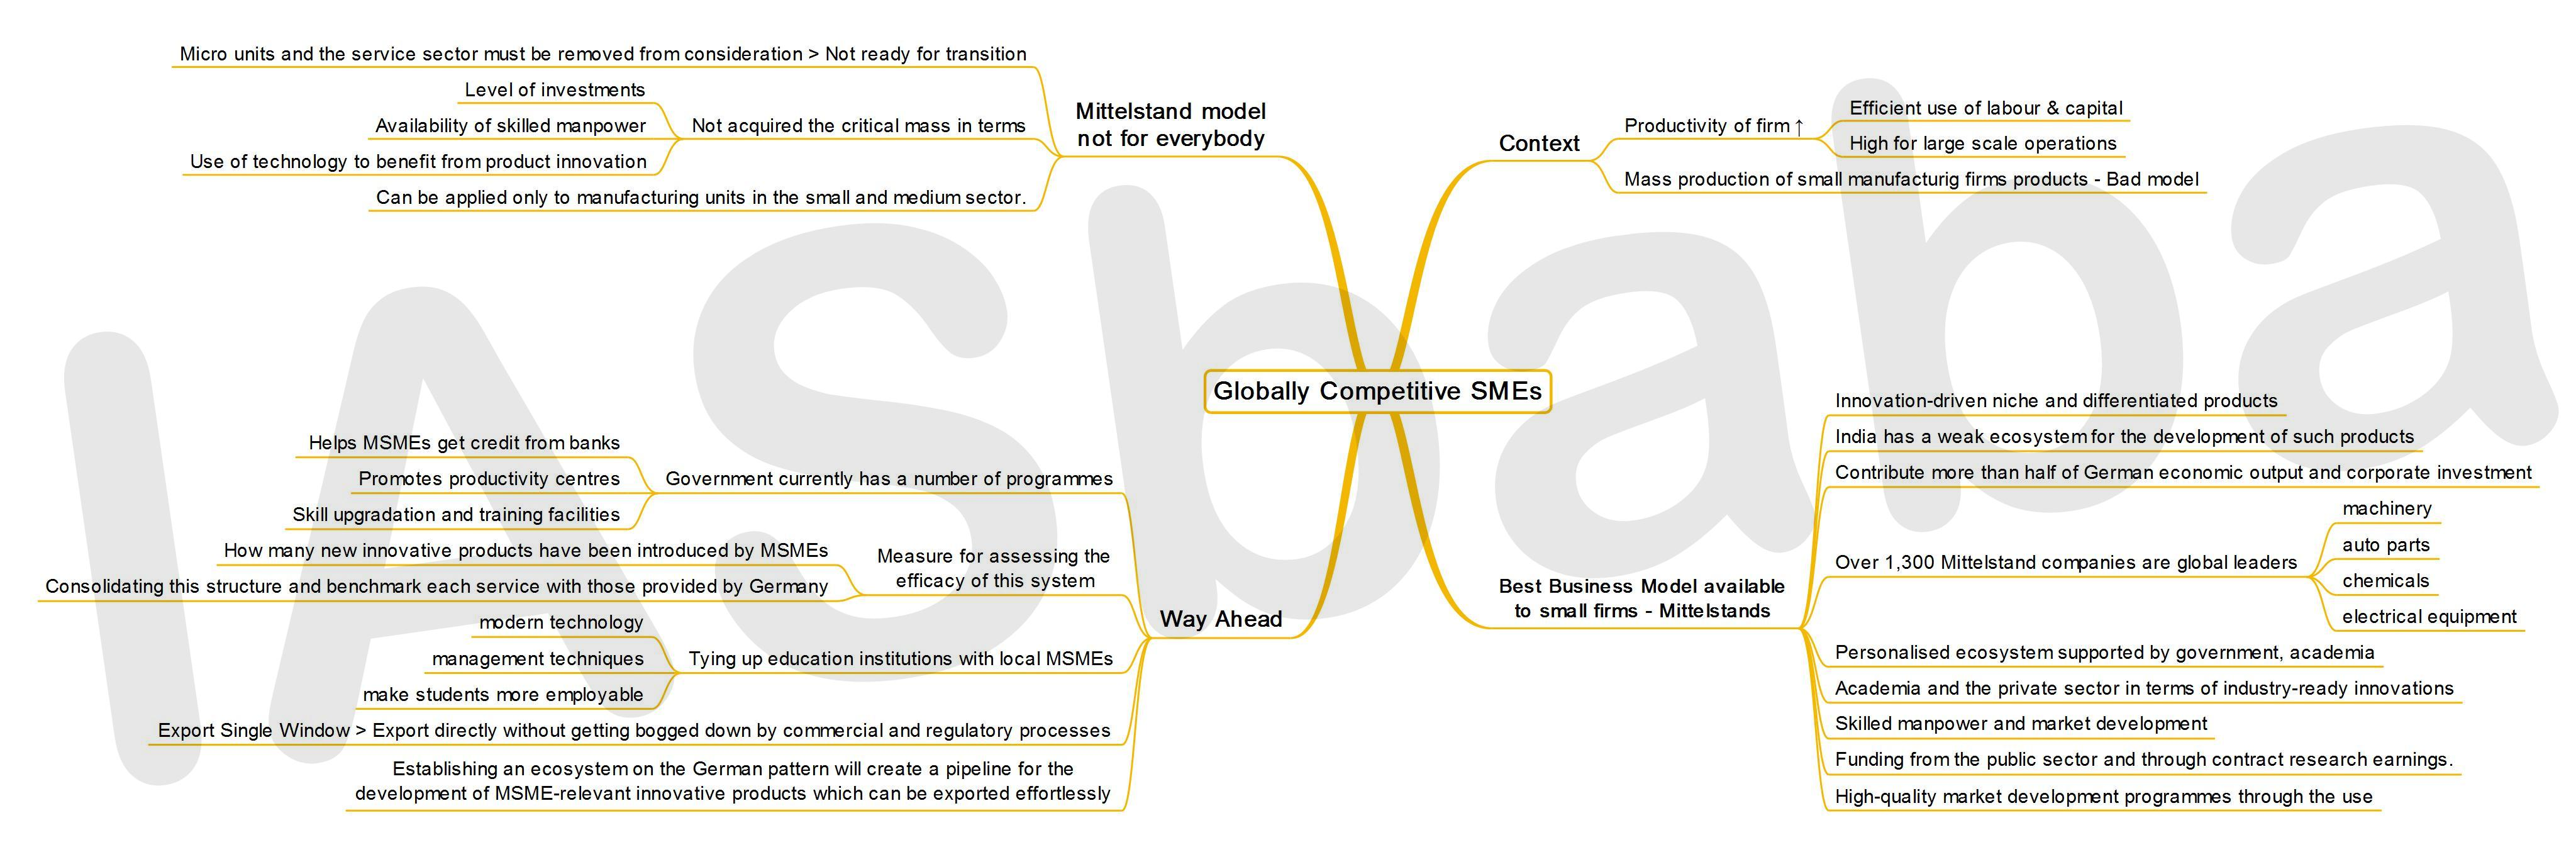 IASbaba's MINDMAP : Issue - Globally Competitive SMEs